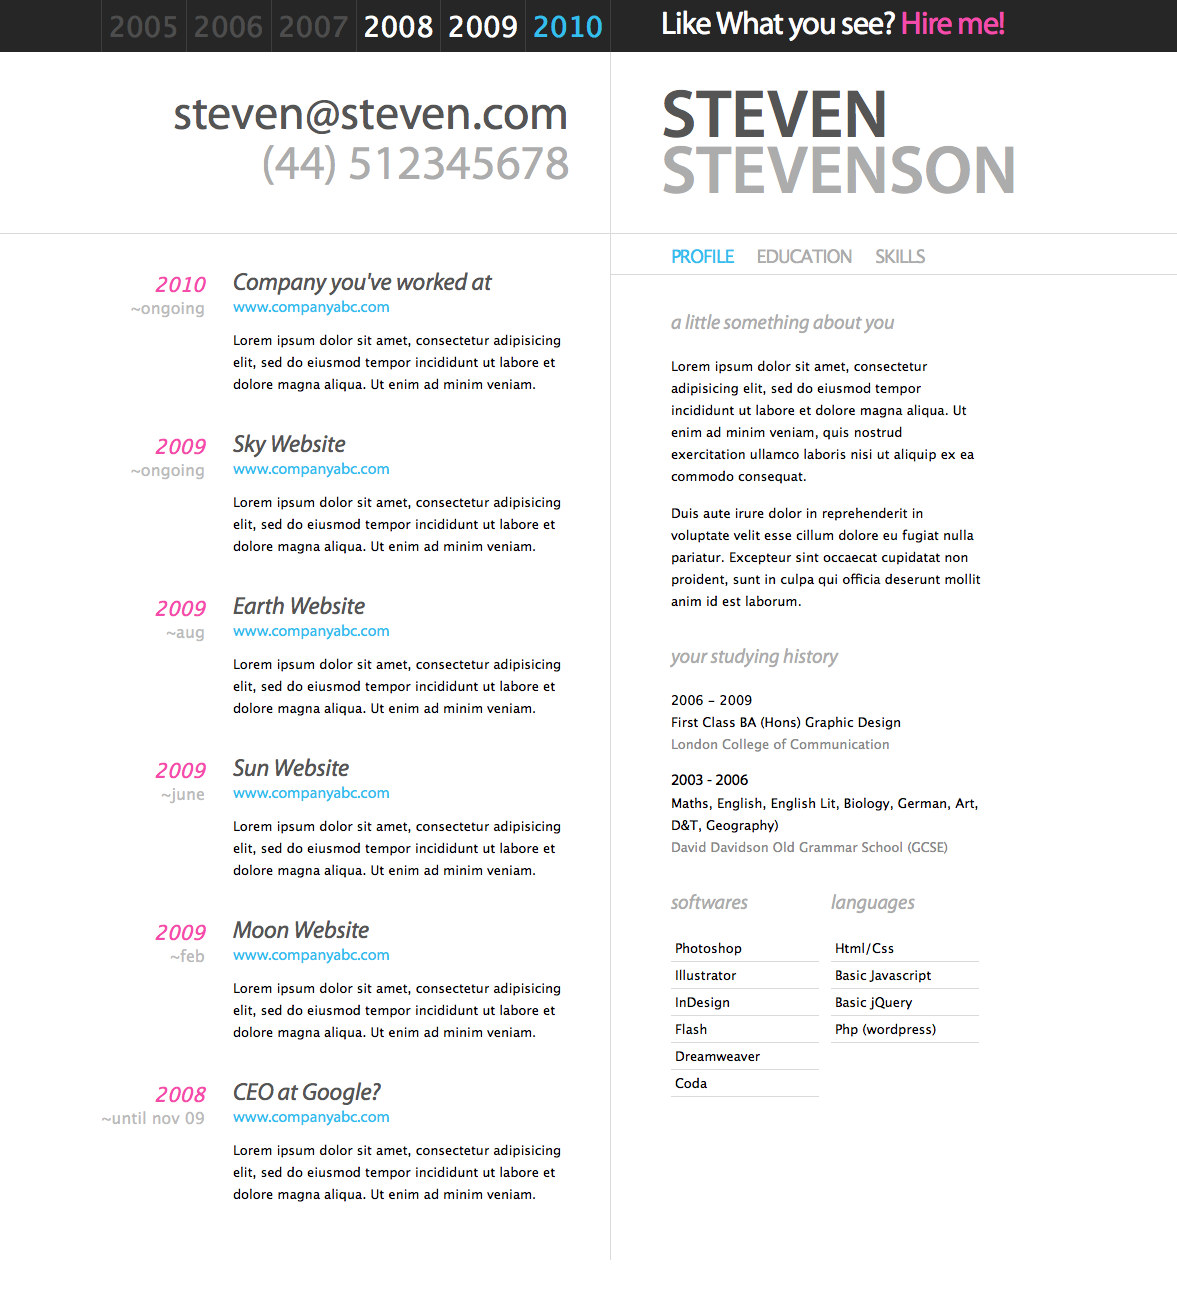 Examples of Beautiful Resume/CV Web Templates